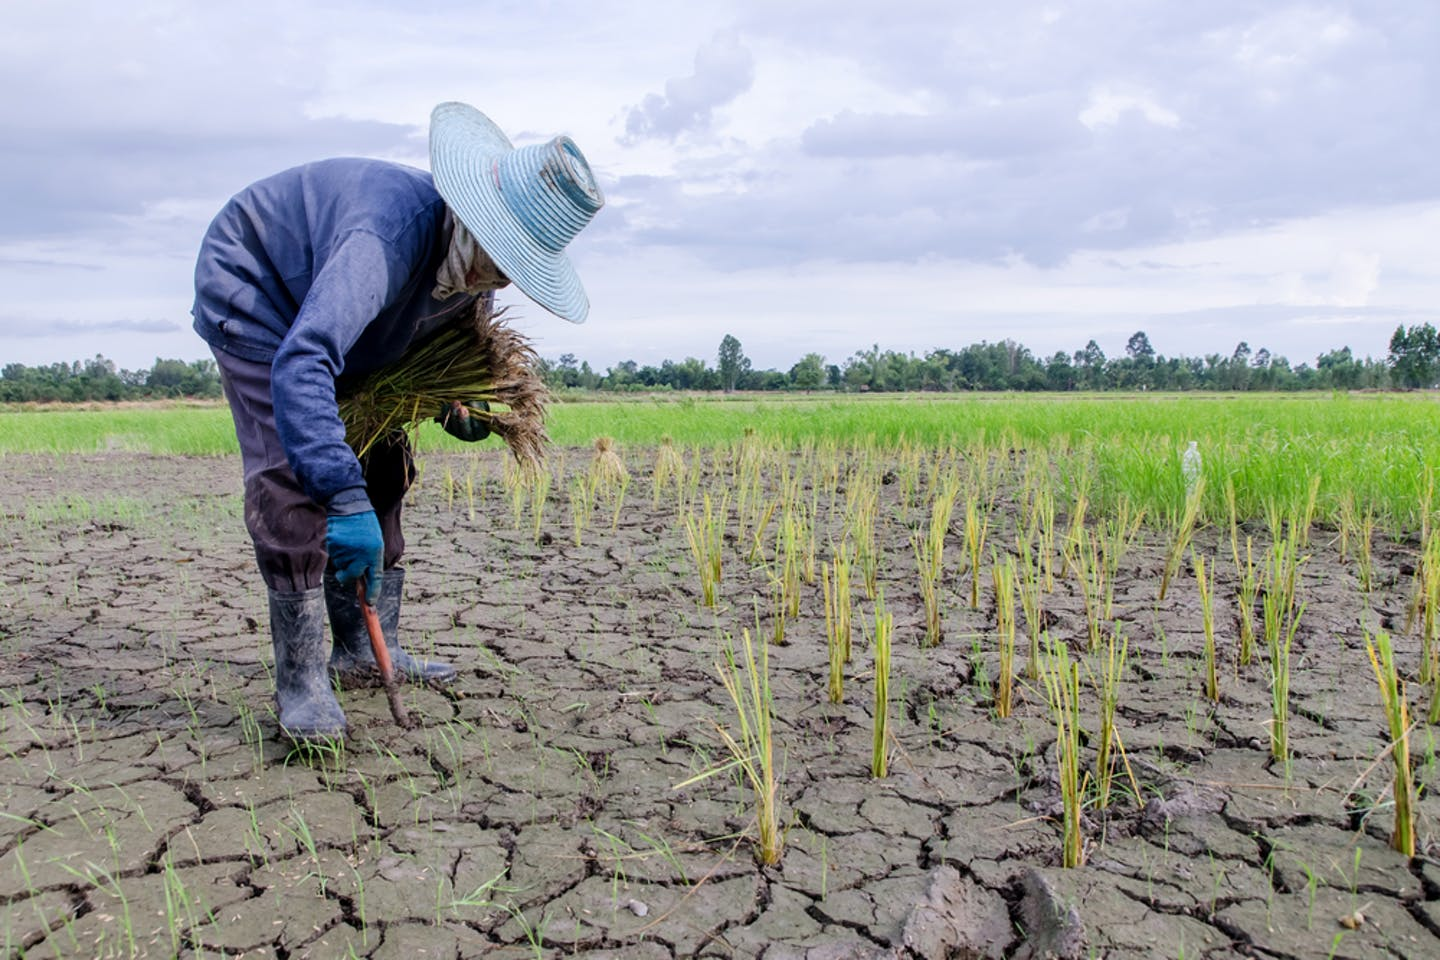 A farmer inspects his crops in a drought-stricken farm land.